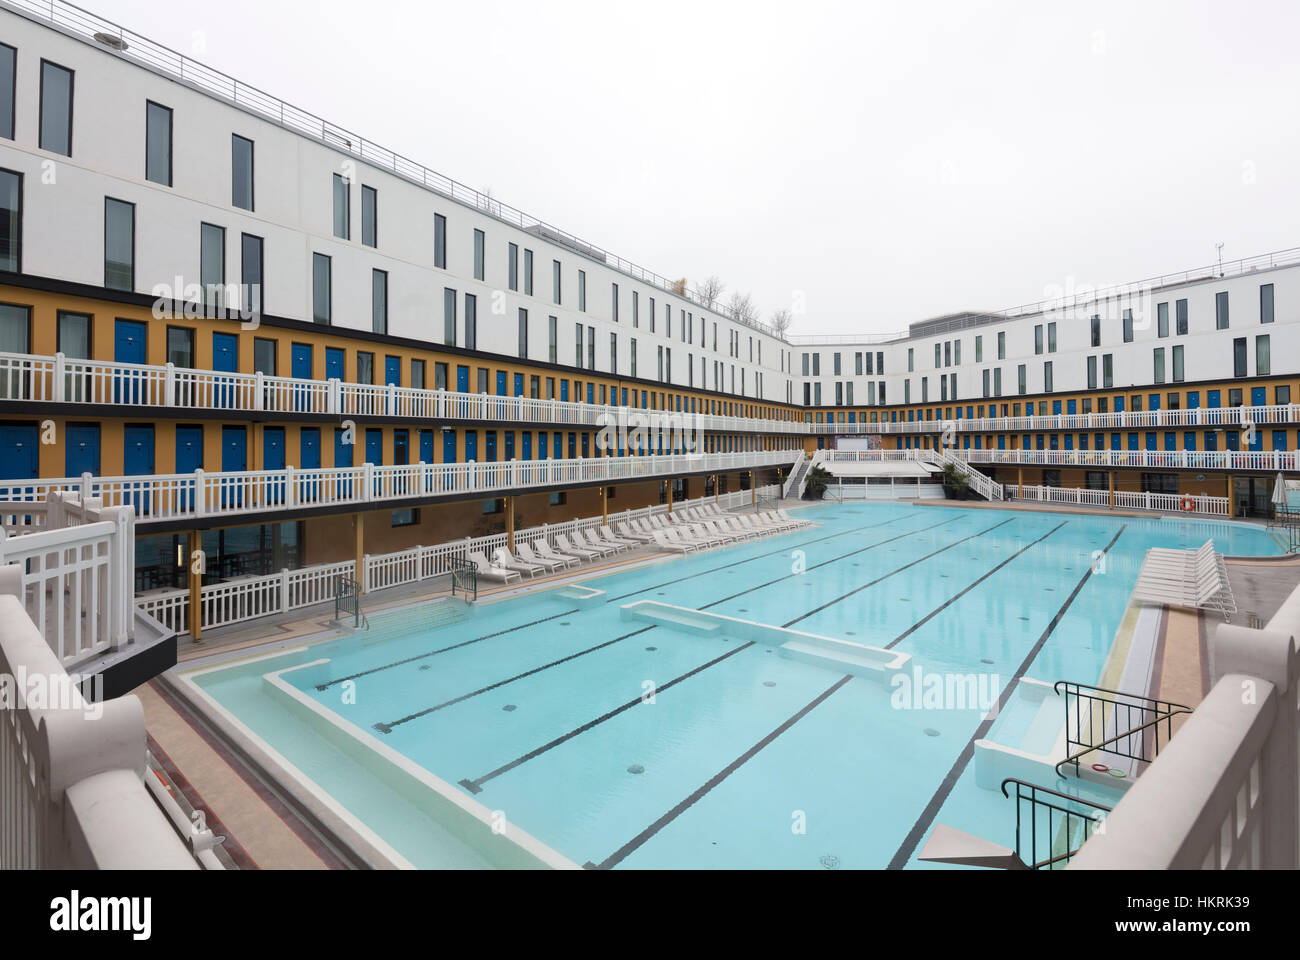 Hotel Molitor Piscine Piscine Molitor Stock Photo 132670925 Alamy